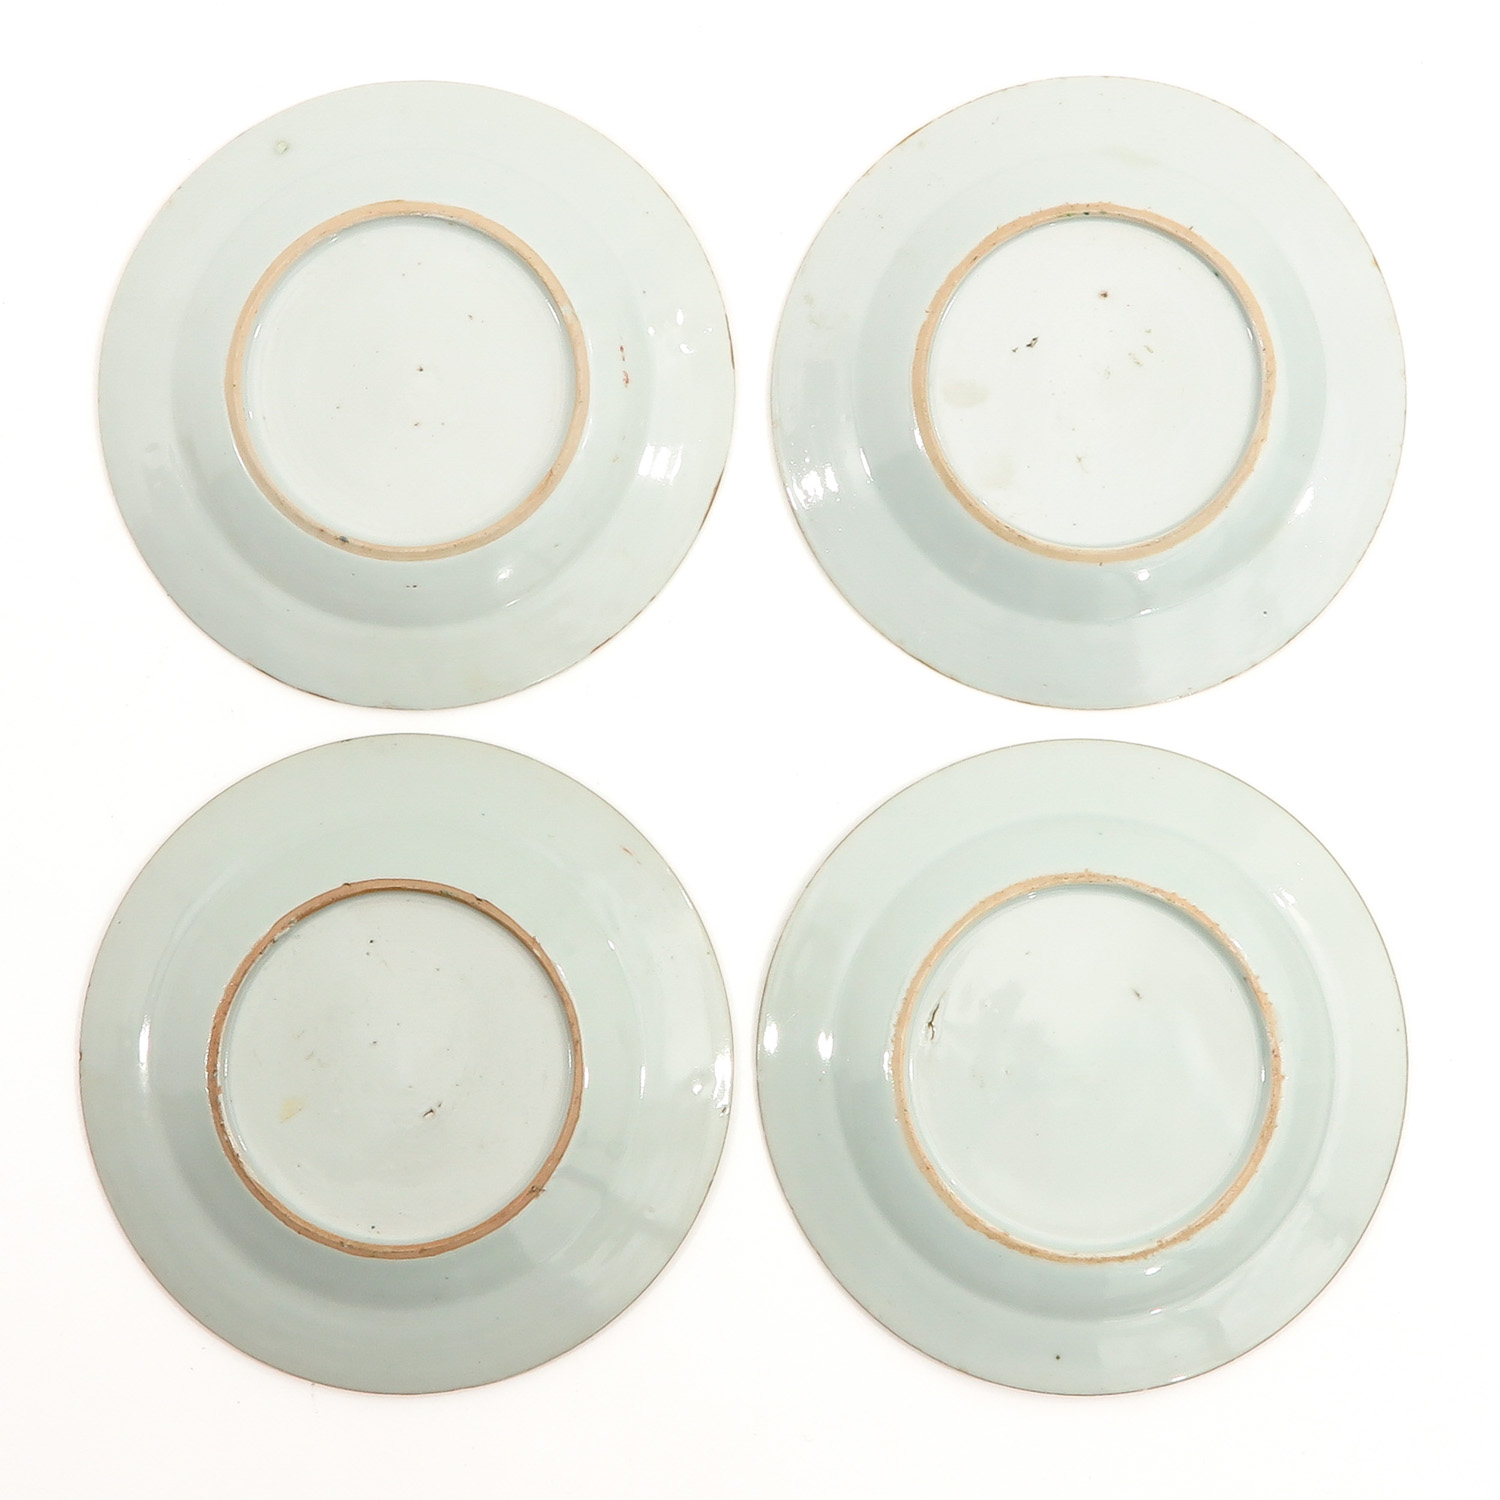 A Series of 4 Famille Rose Plates - Image 2 of 10